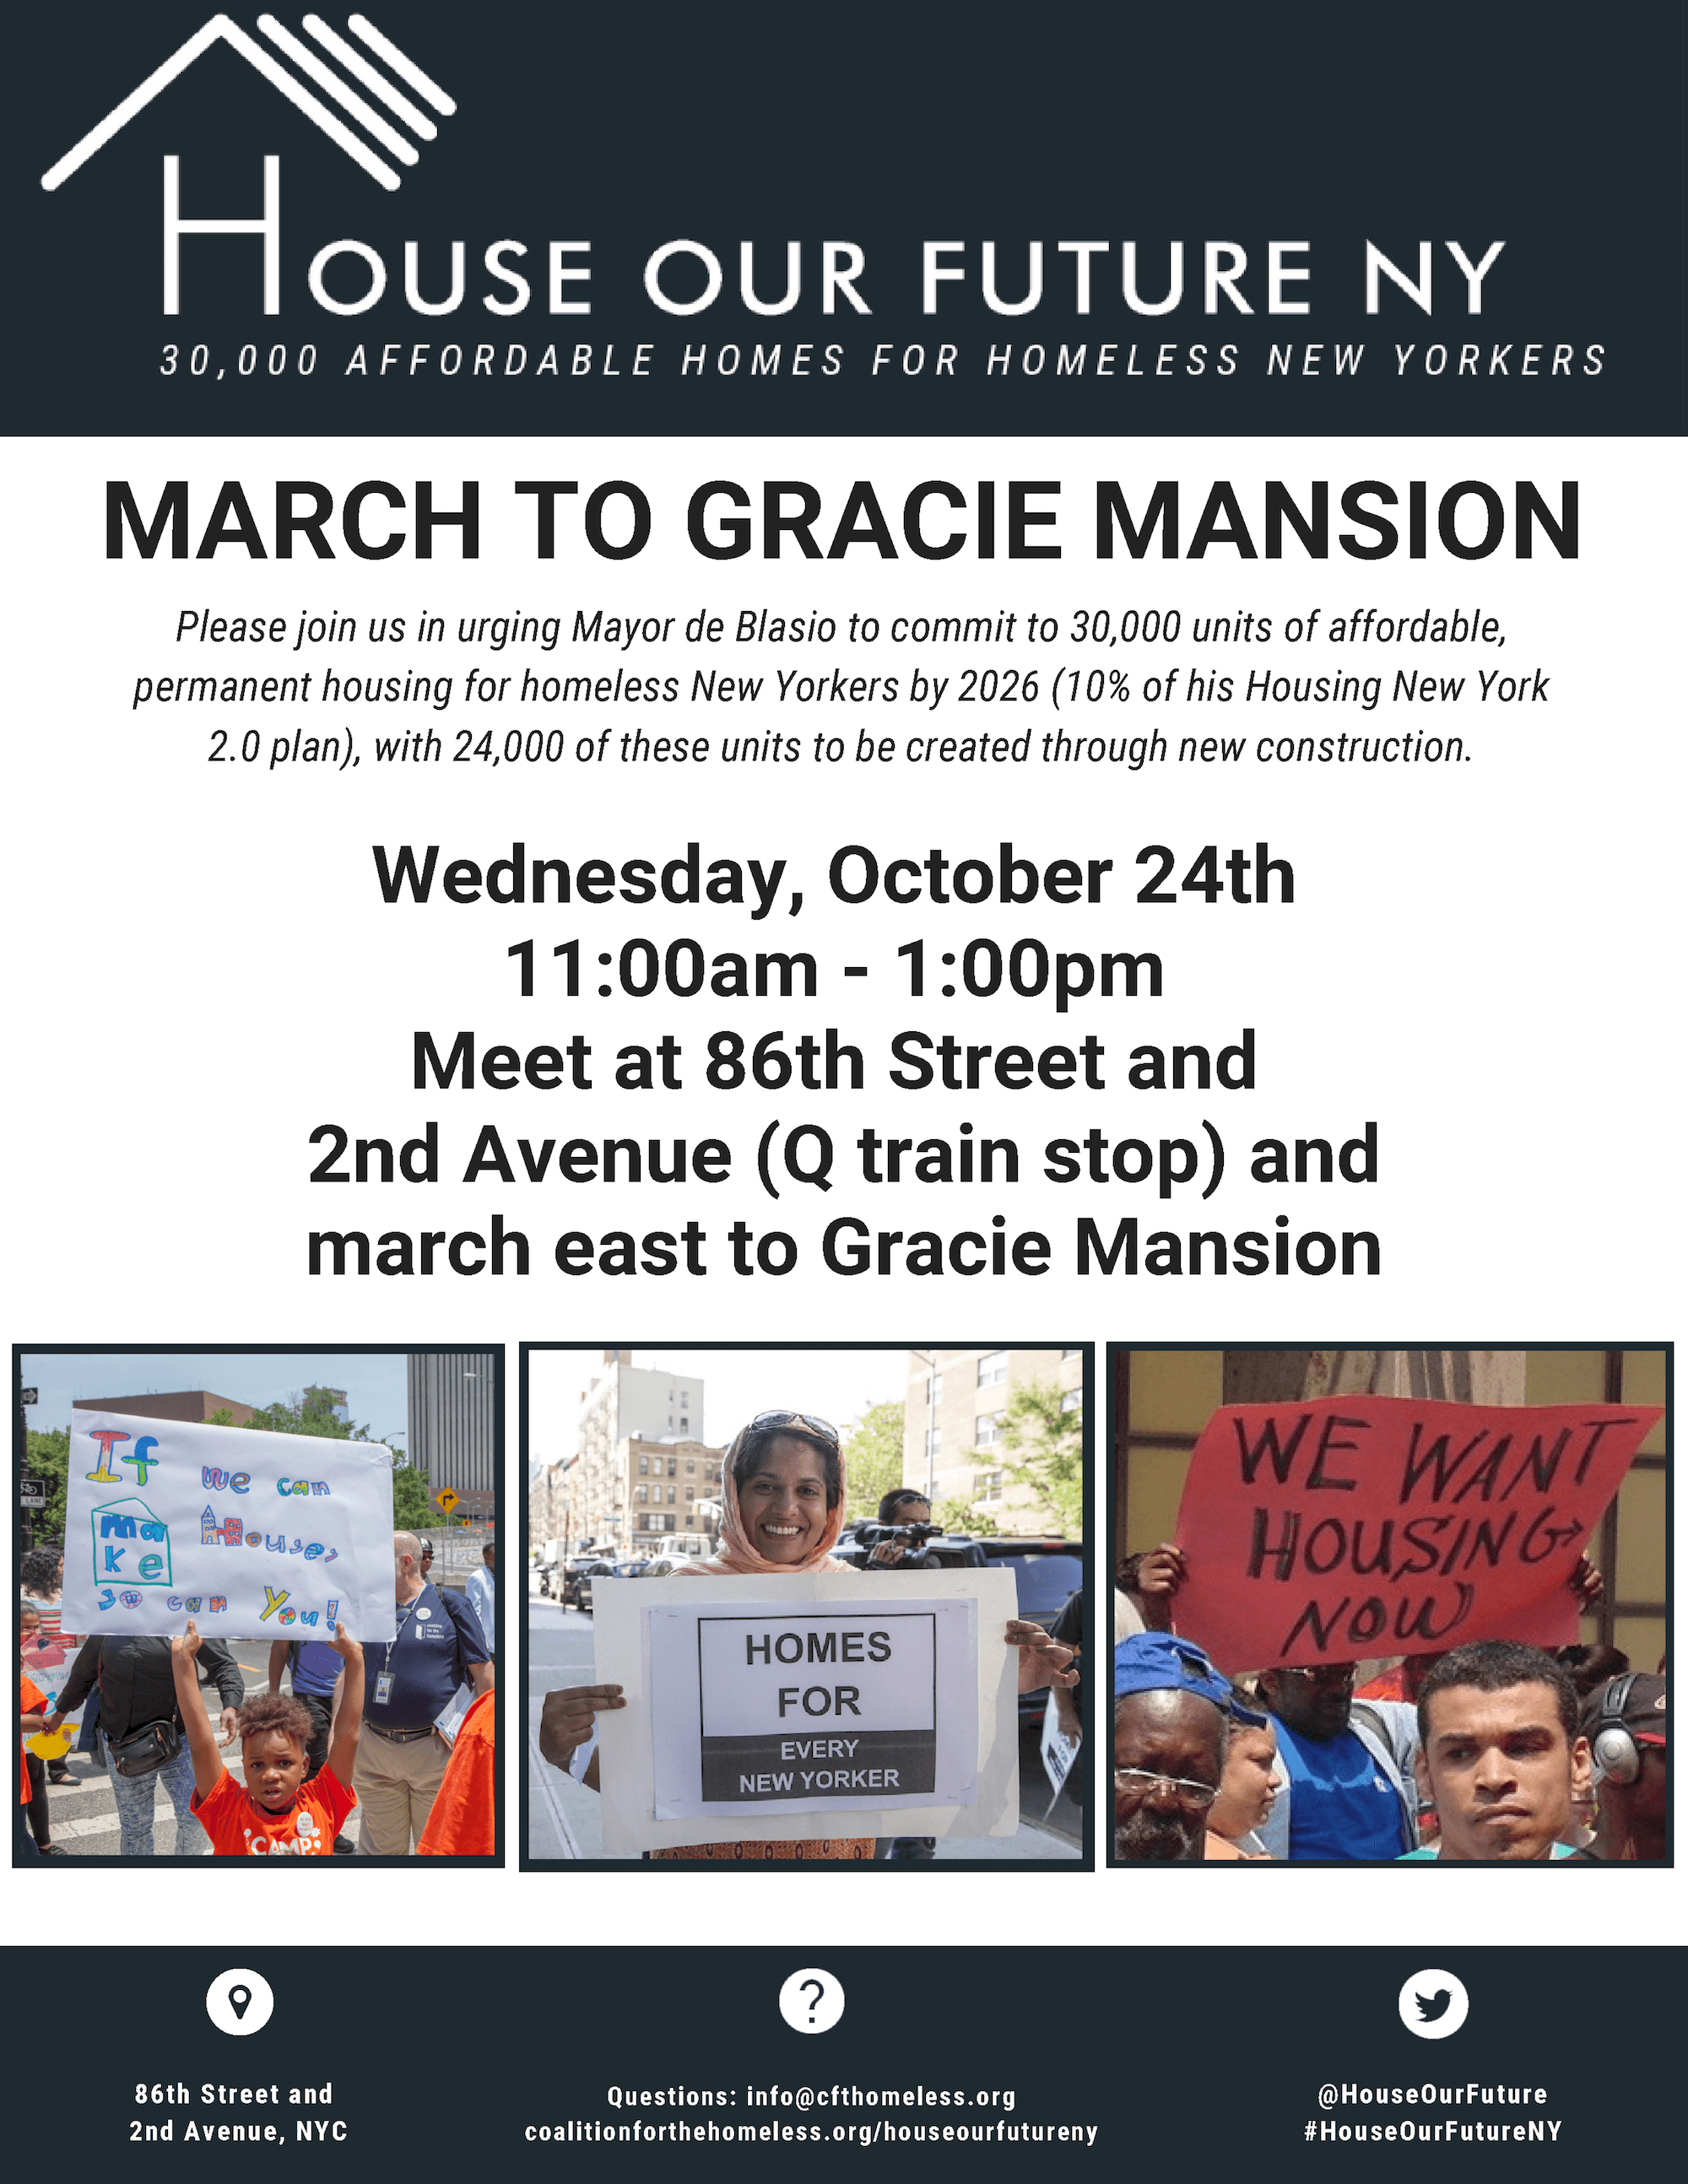 Poster for the March to Gracie Mansion on October 24th